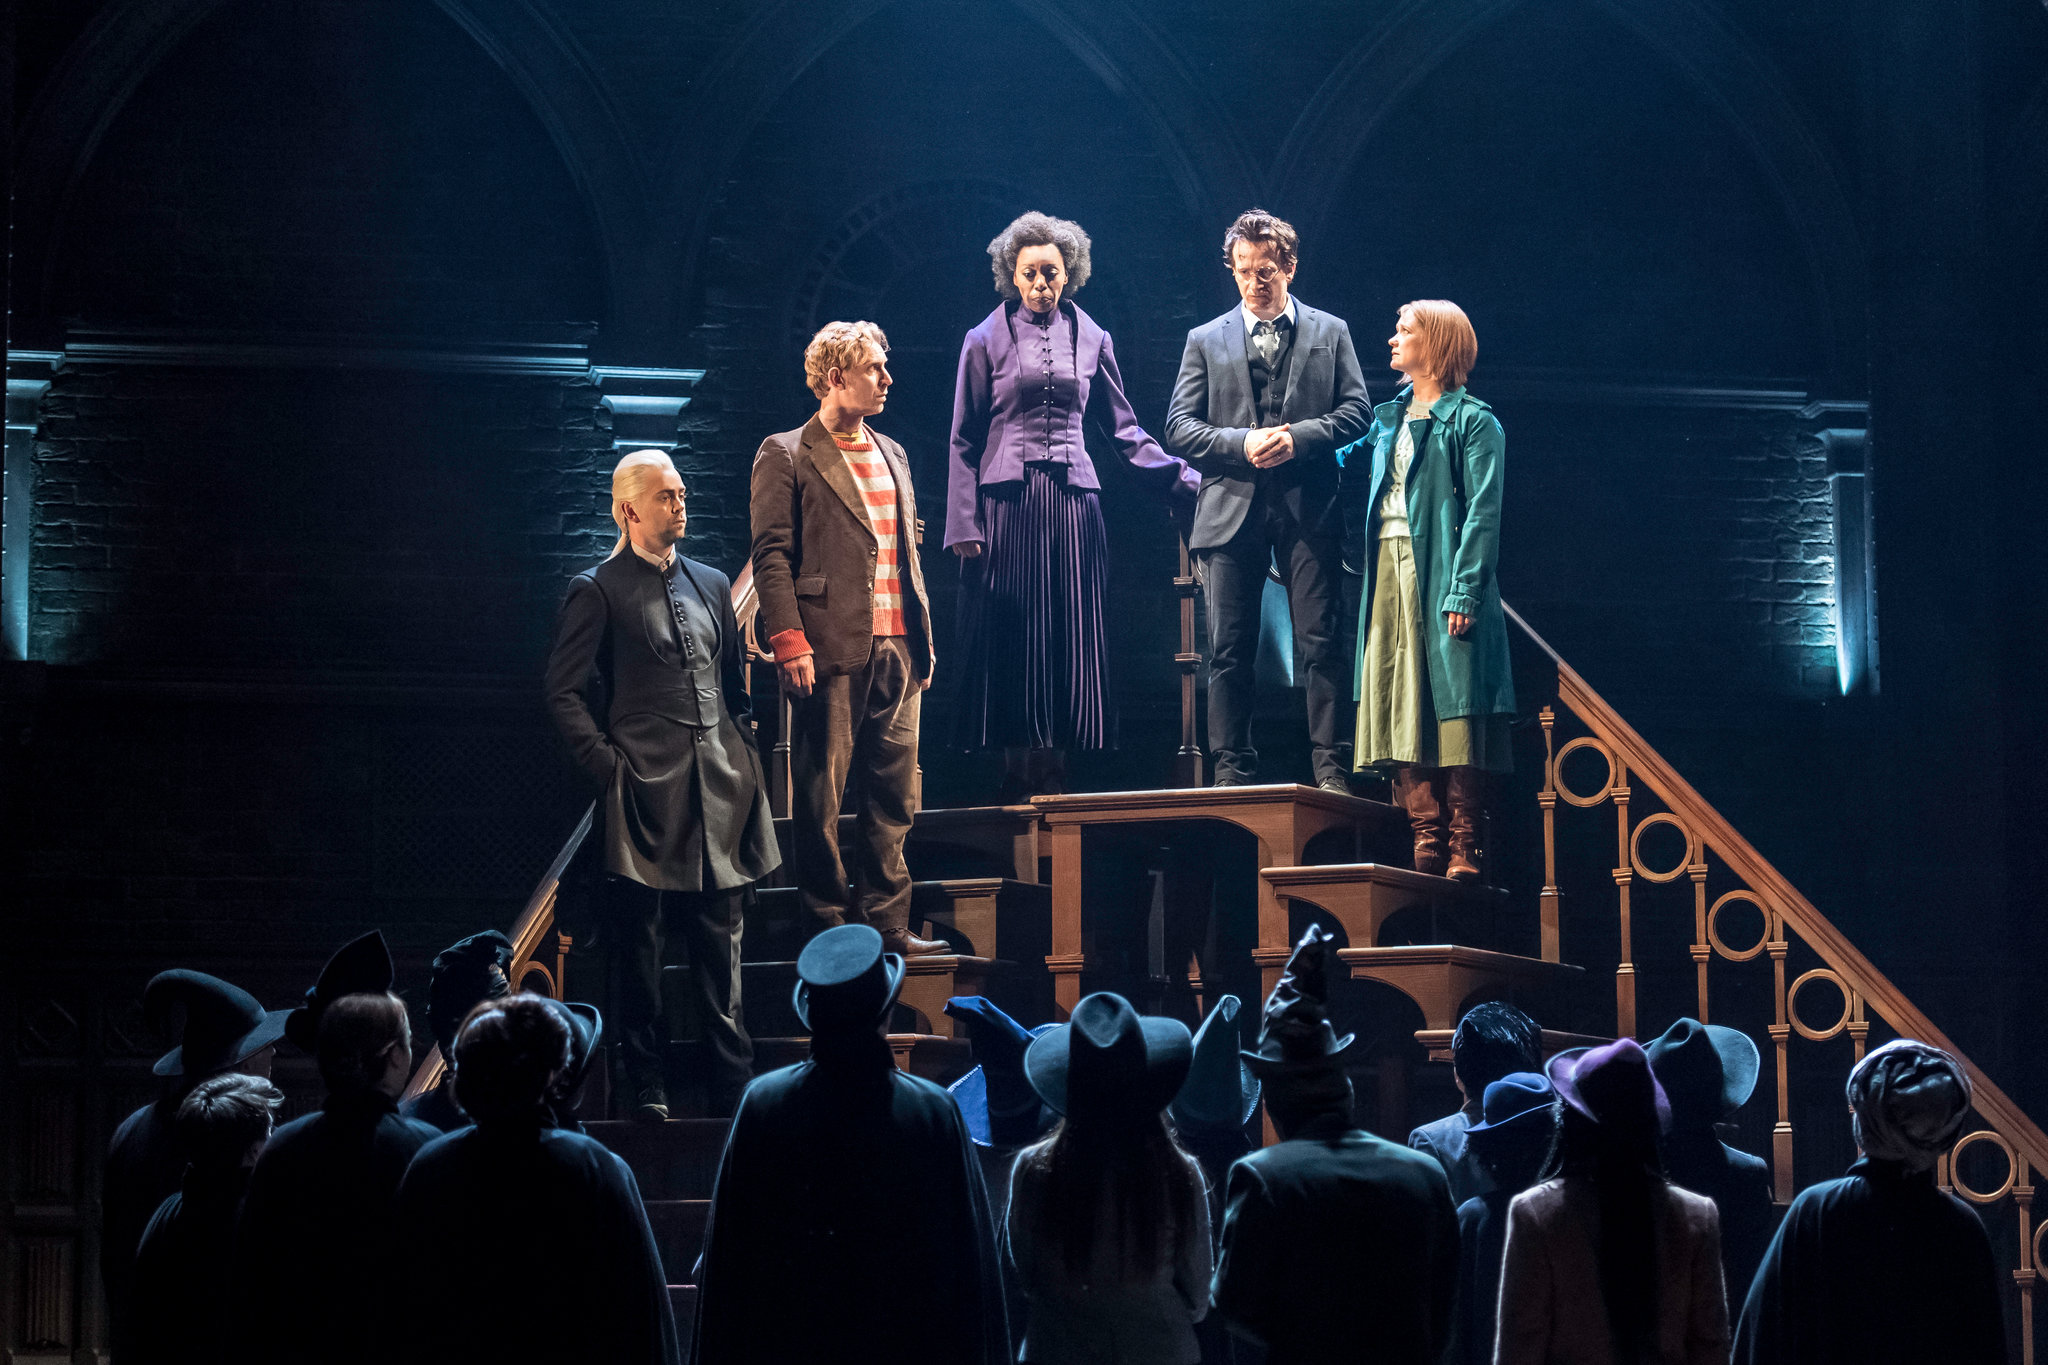 Harry Potter and the Cursed Child - Part 1 & 2 (9/3 7:30PM & 9/4 7:30PM) at Lyric Theatre